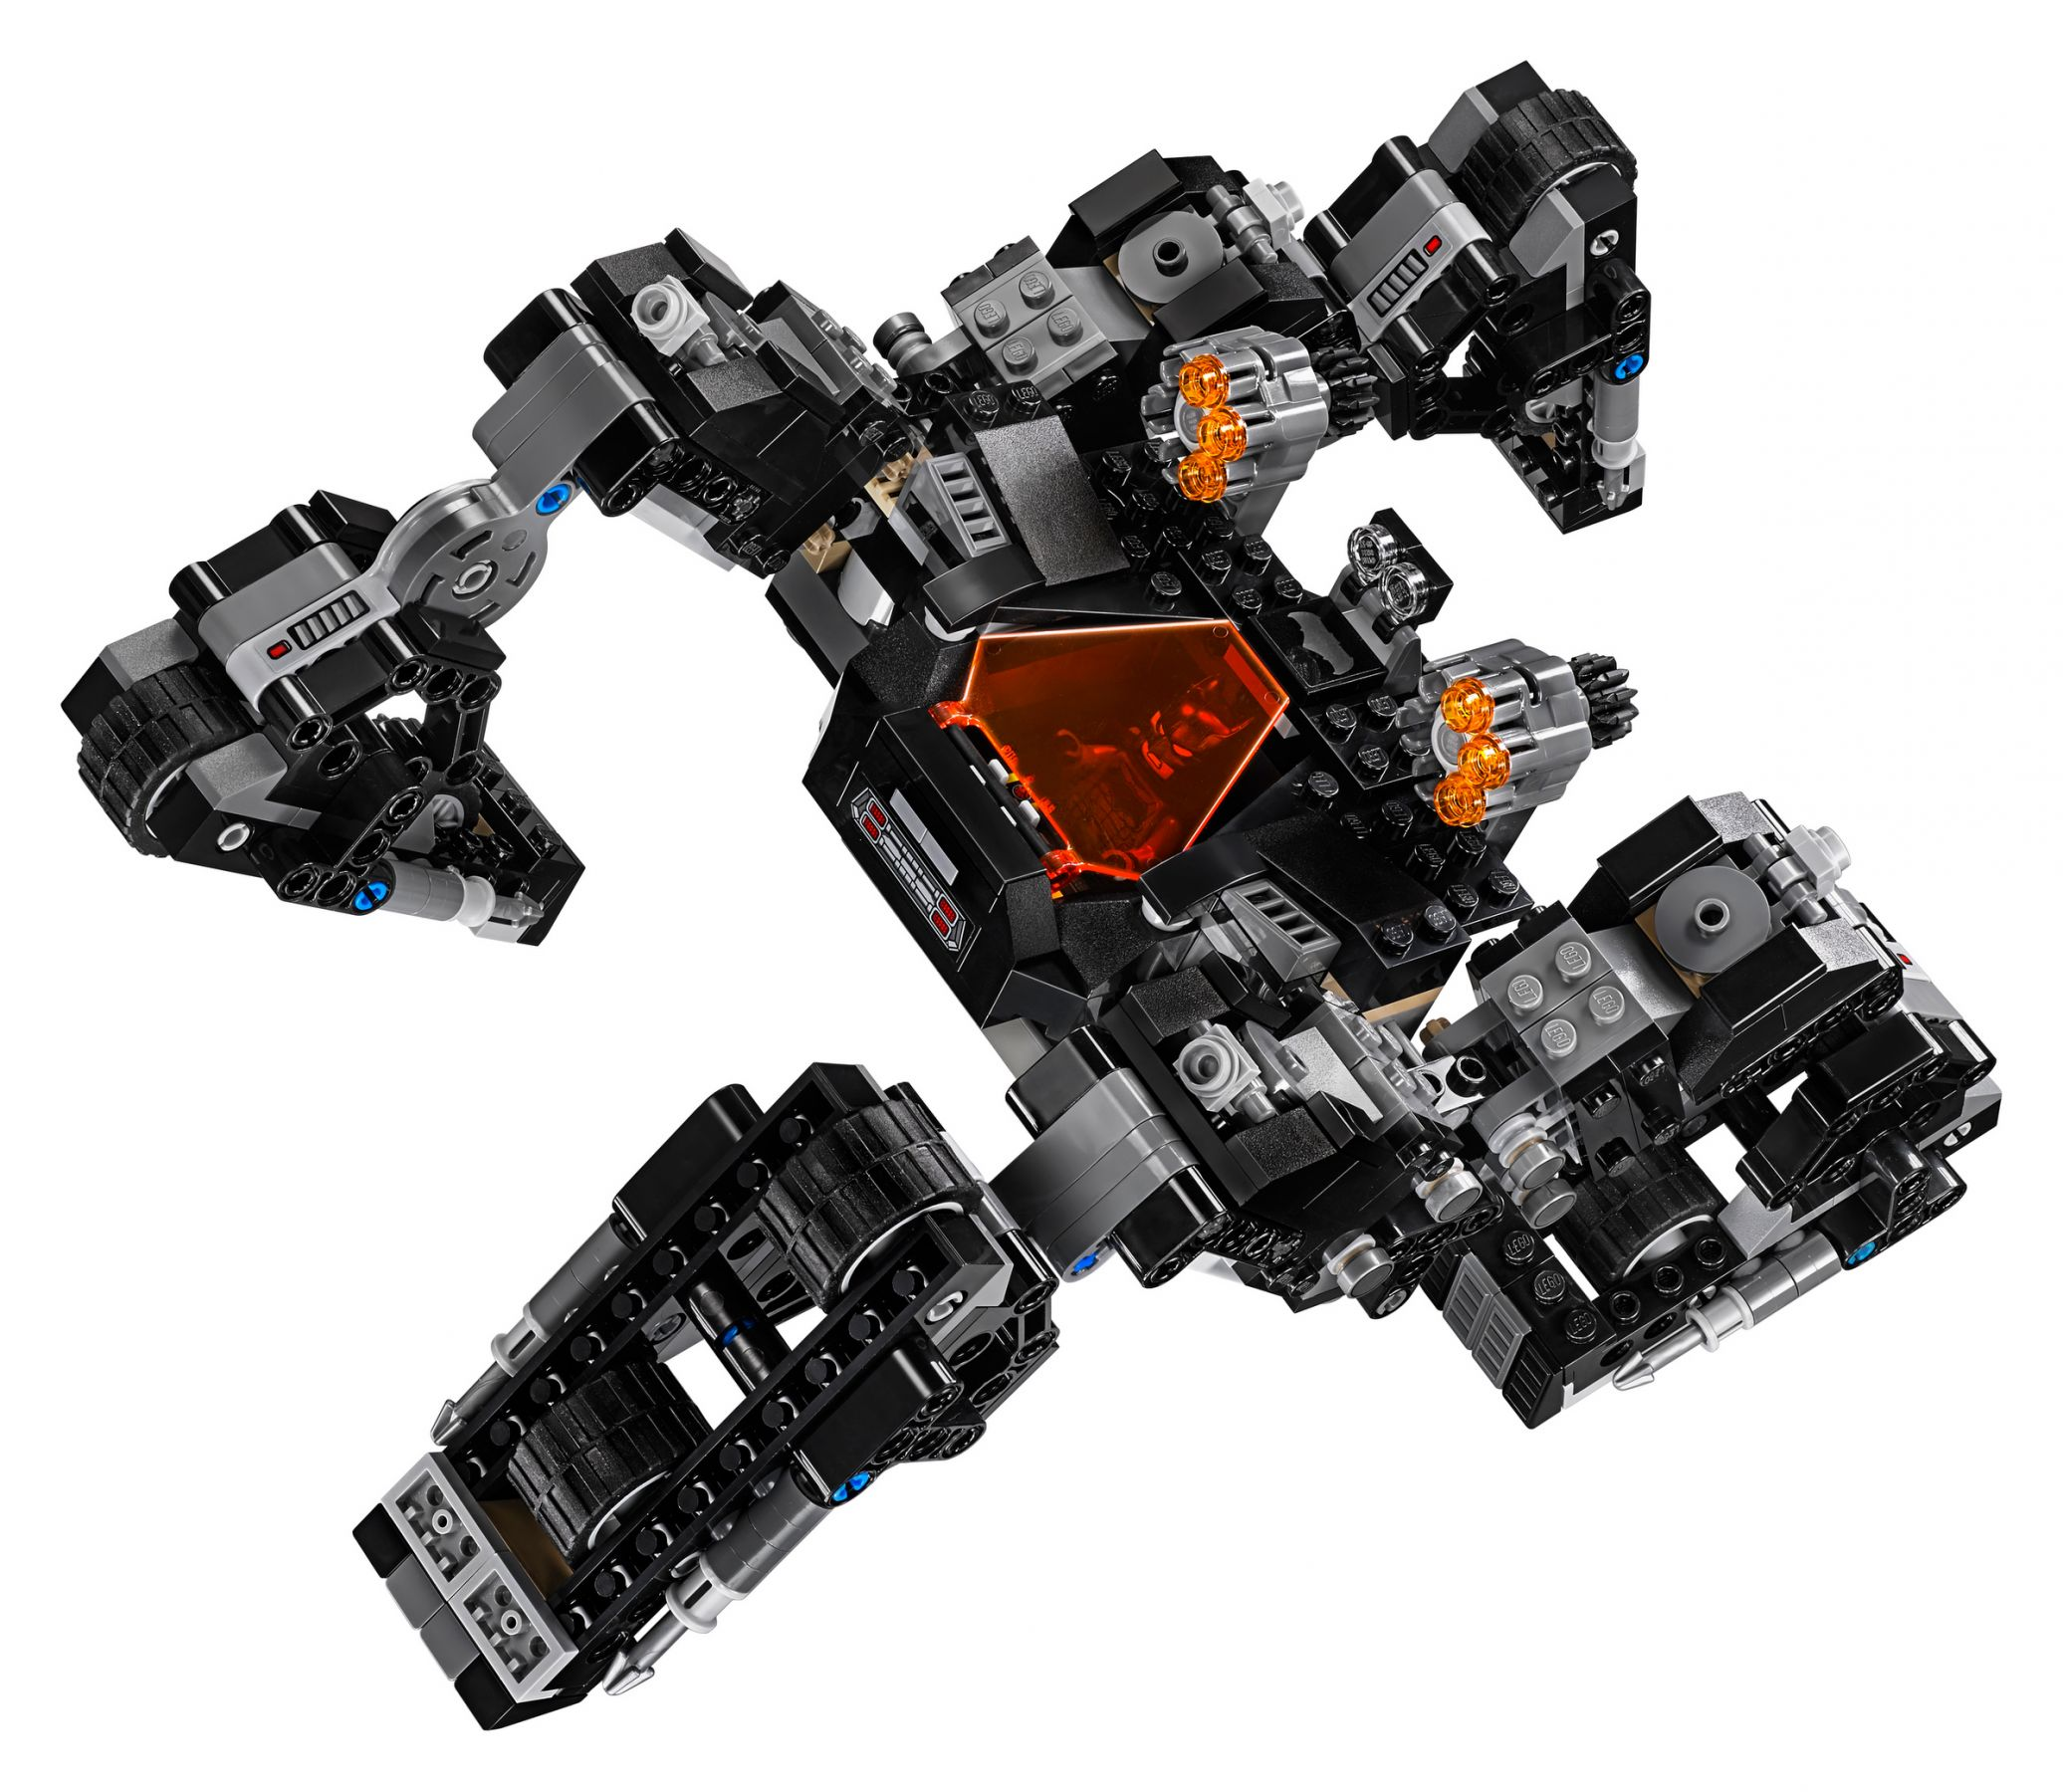 LEGO Super Heroes 76086 Knightcrawlers Tunnel-Attacke LEGO_76086_alt2.jpg